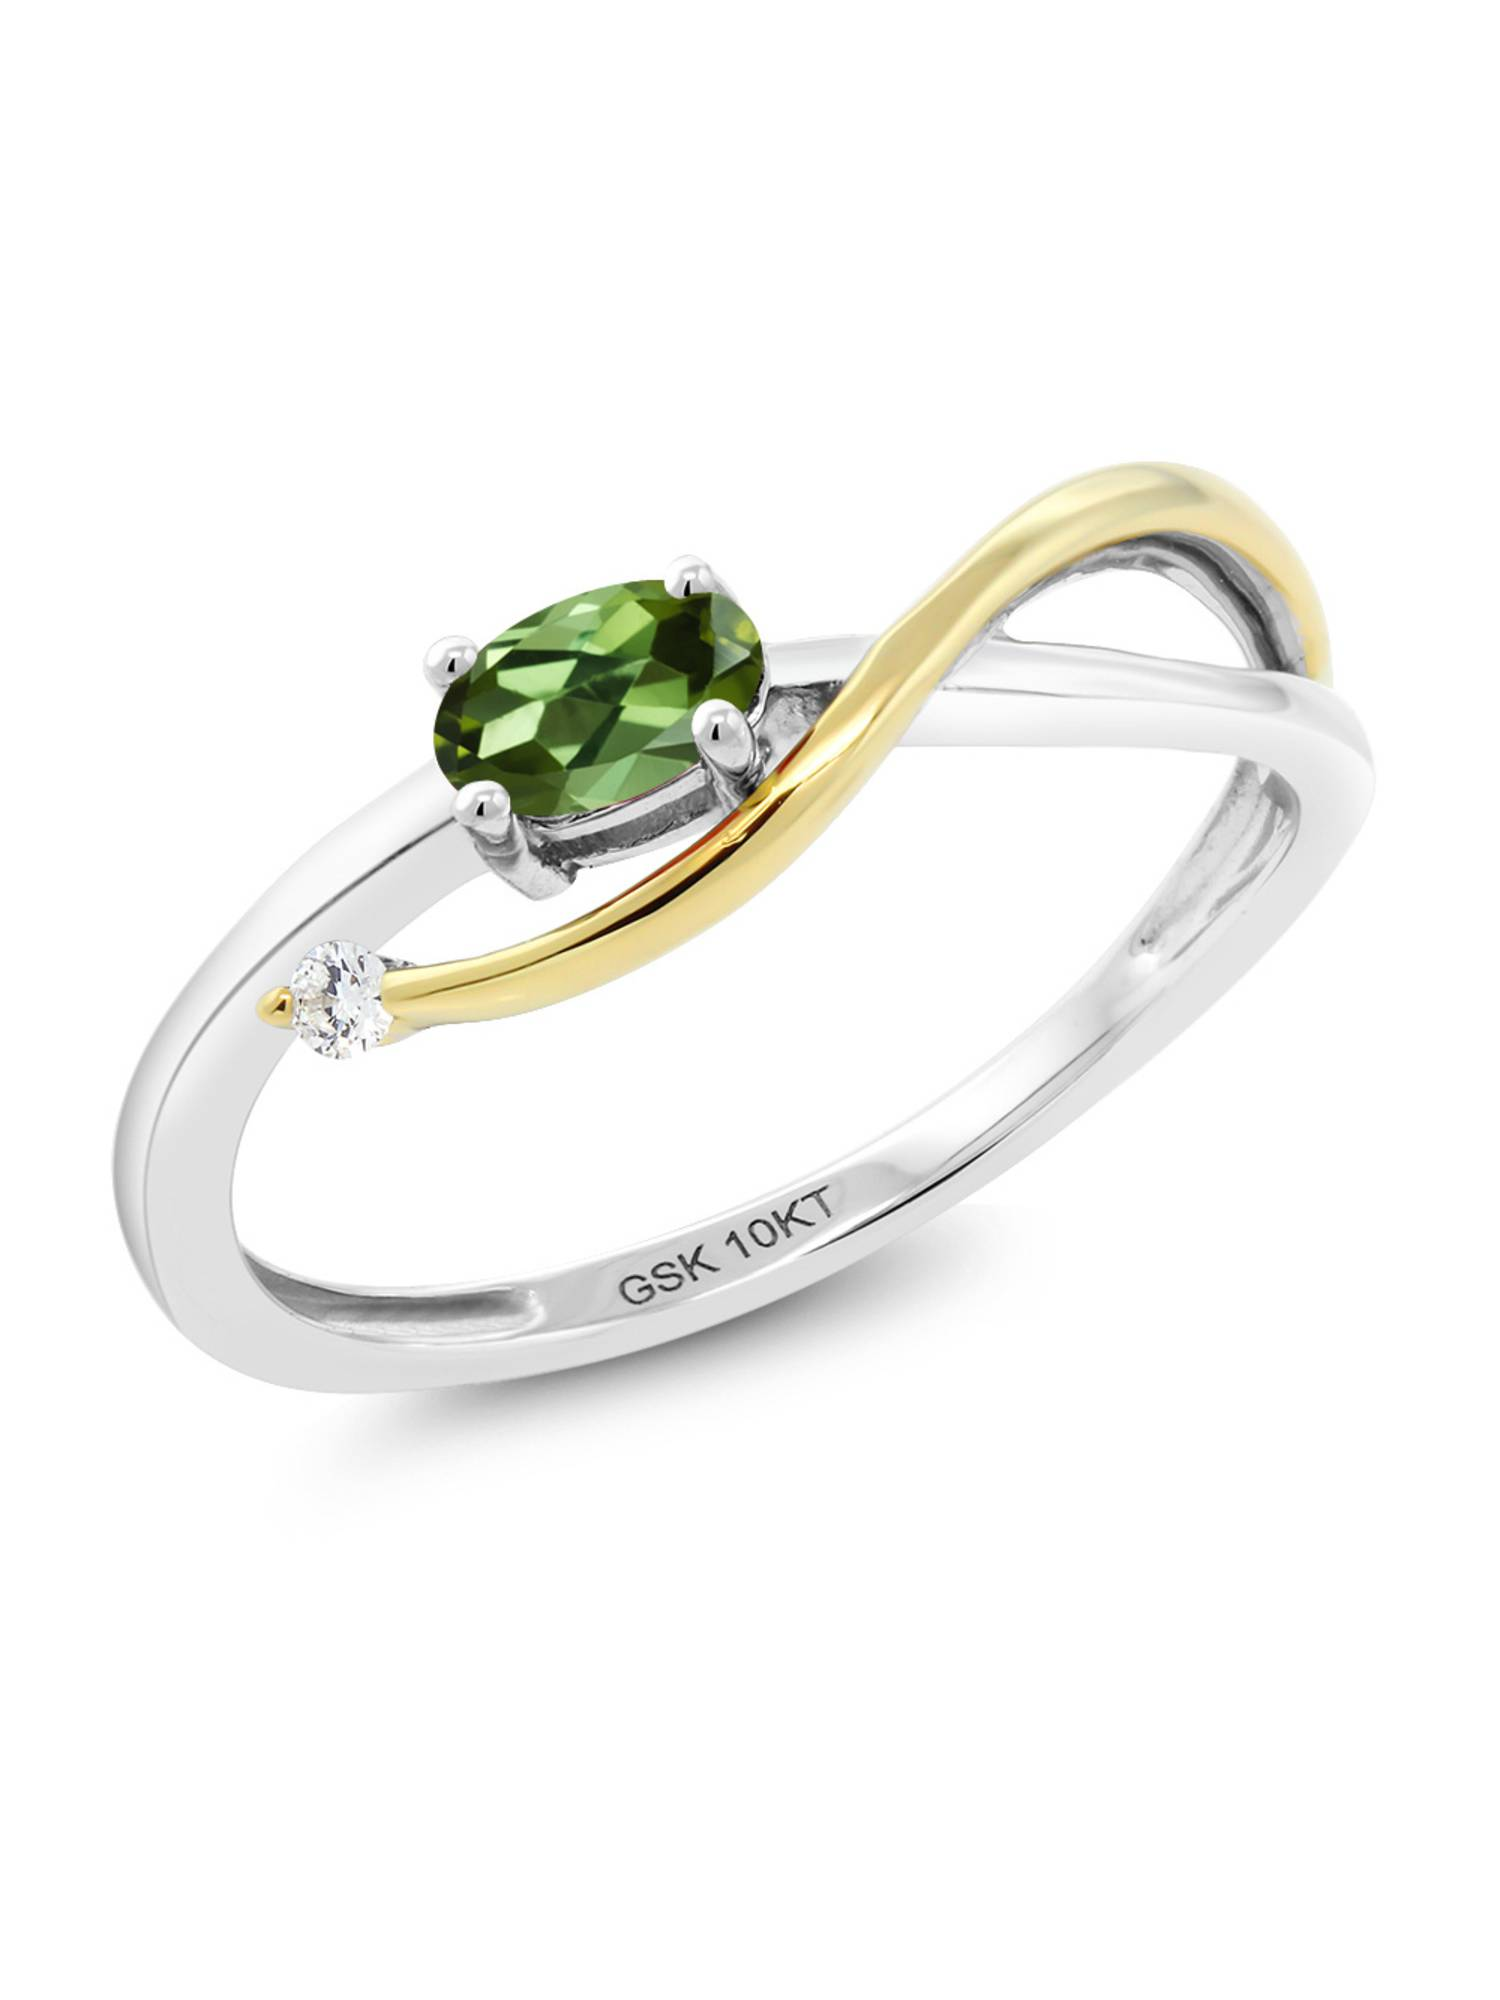 10K Two-Tone Gold 0.02 Ct Green Tourmaline and Diamond Engagement Ring by